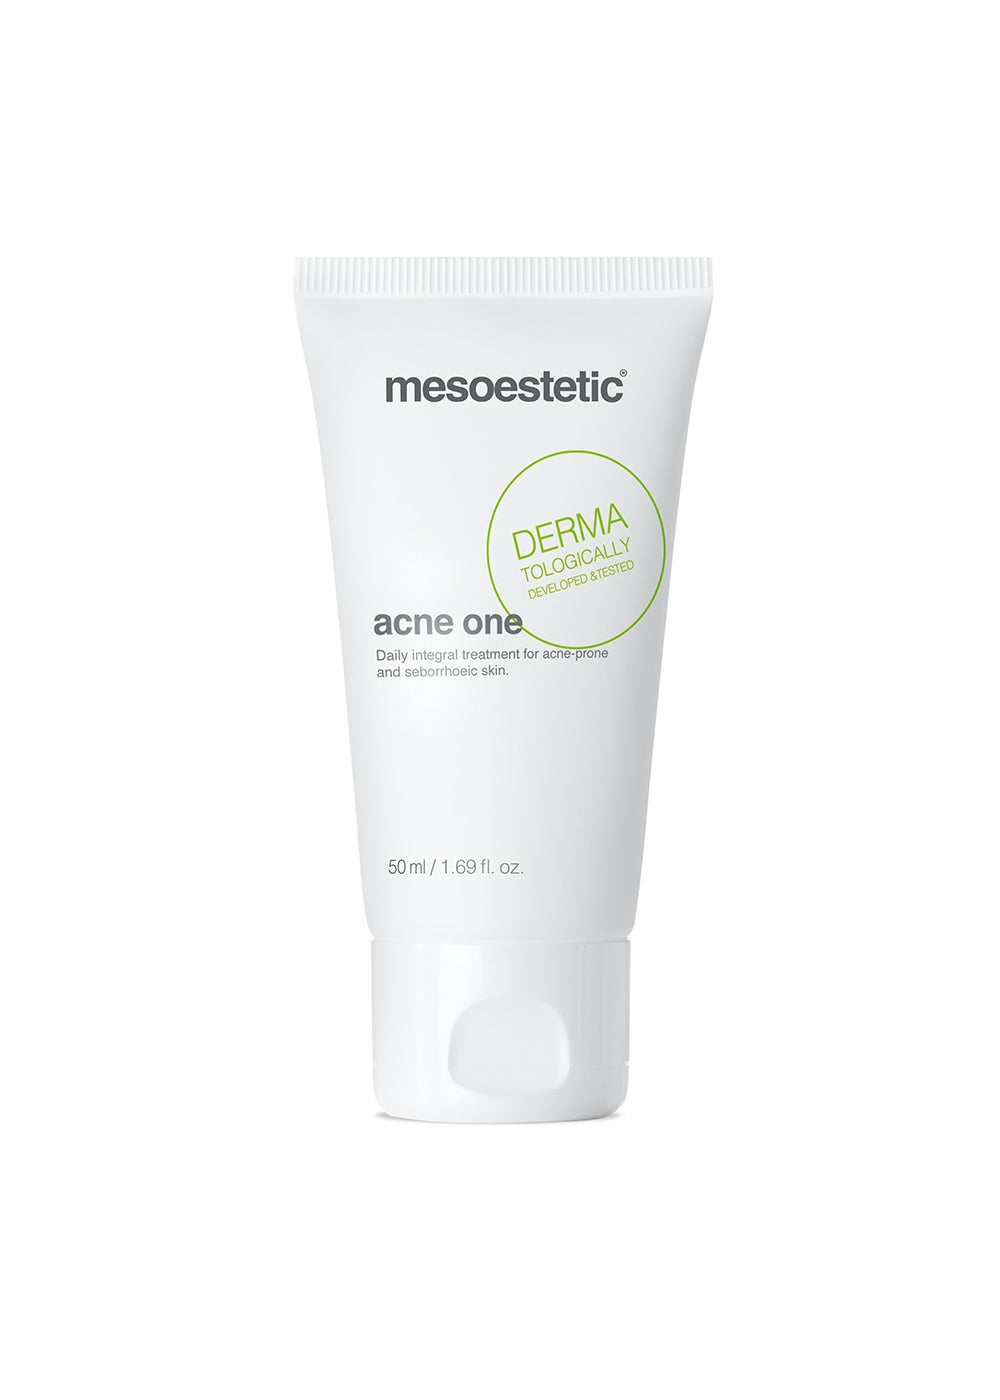 Mesoestetic Acne Line Acne One Cream